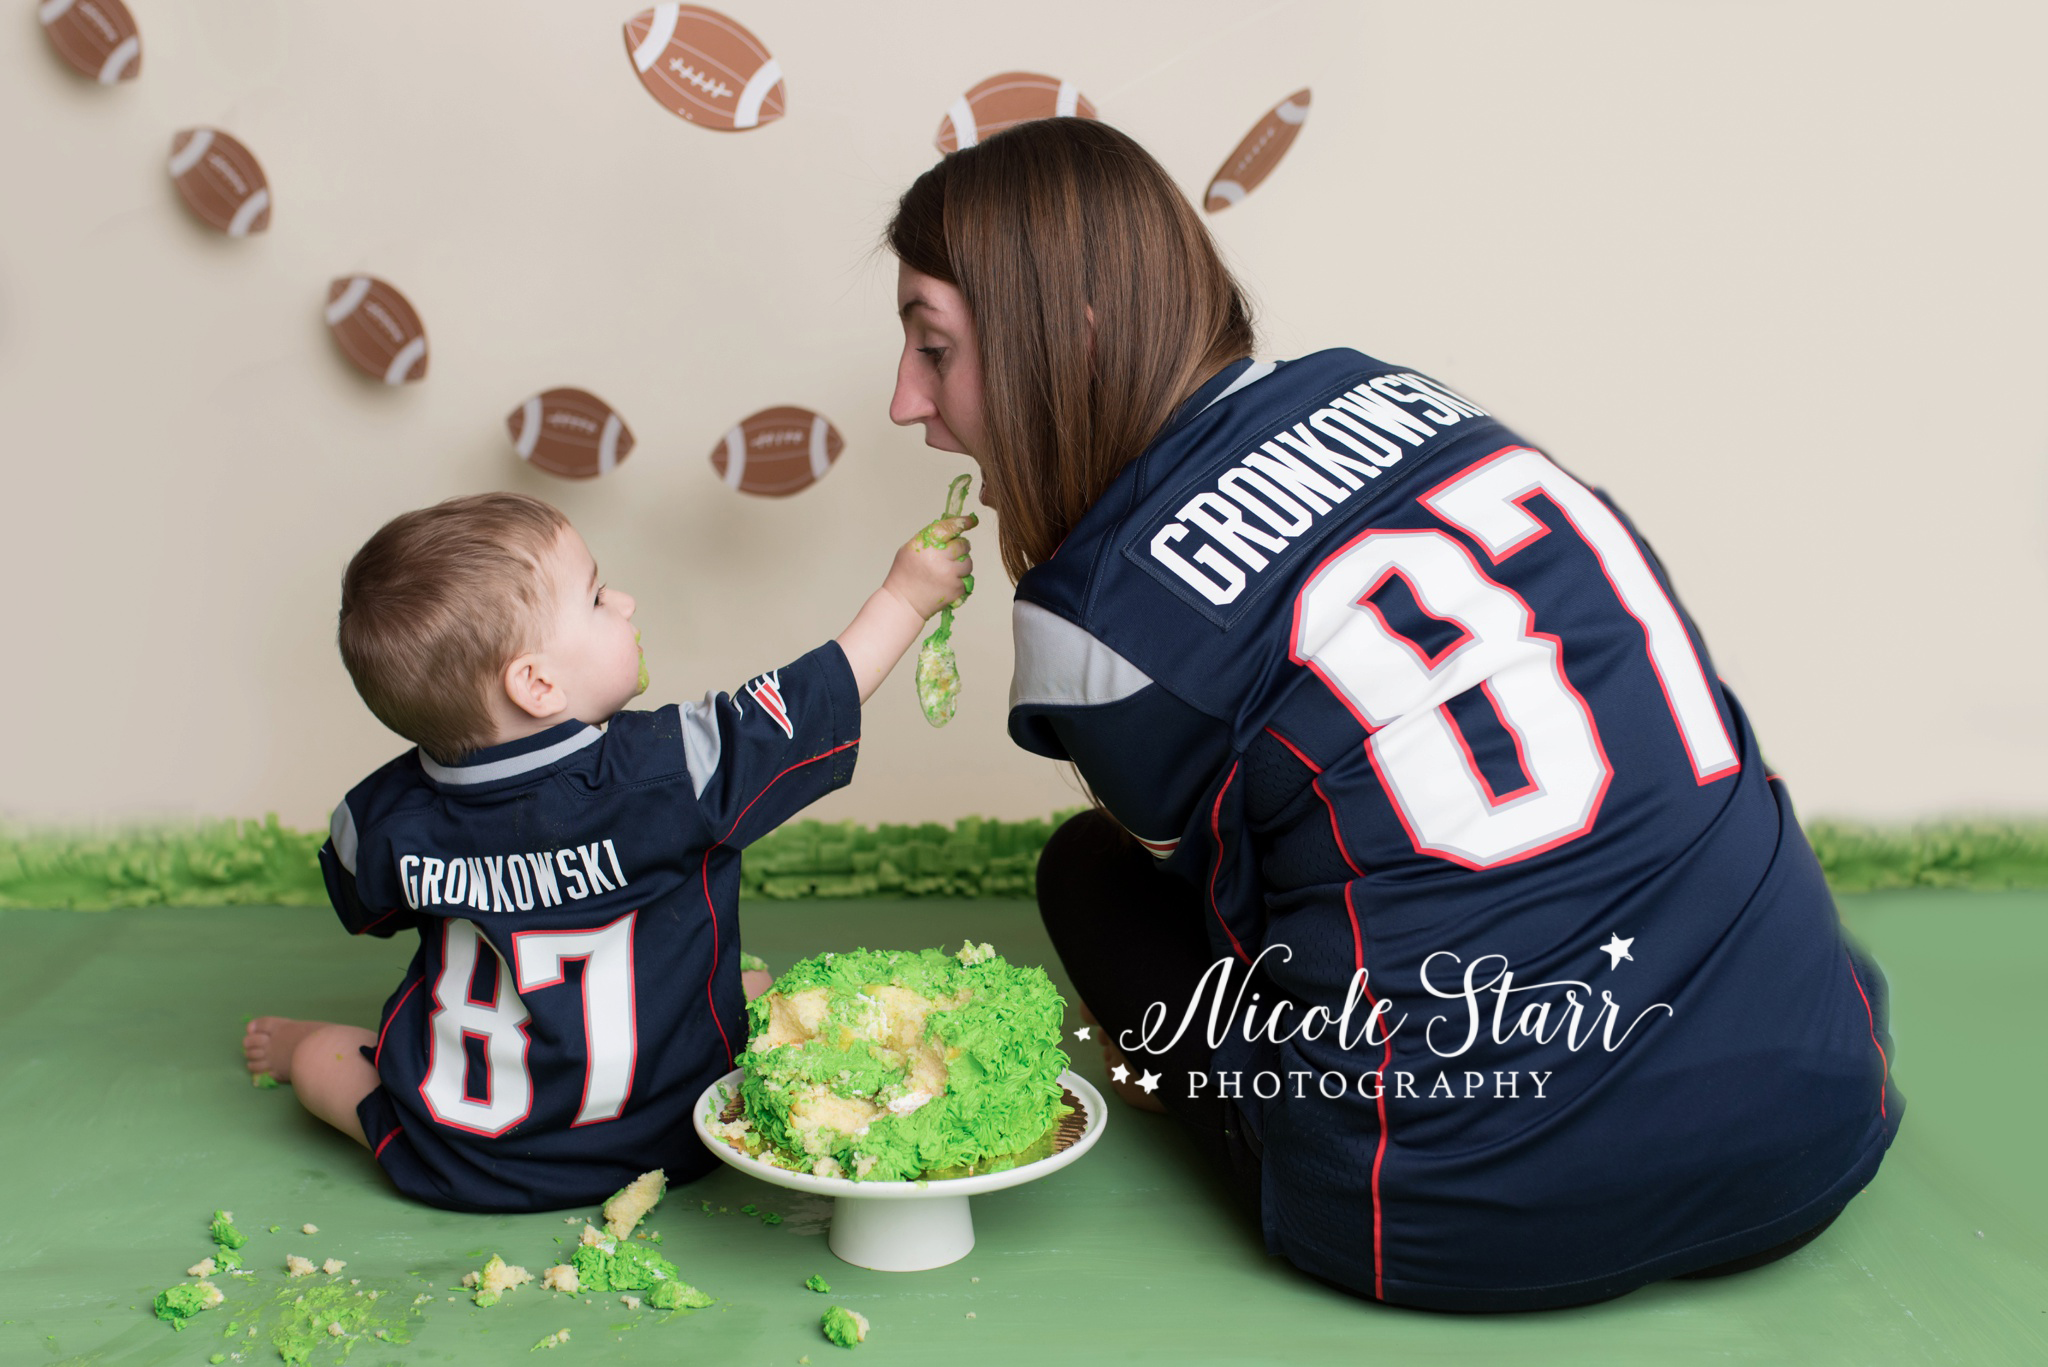 Nicole Starr Photography | Saratoga Springs Cake Smash Photographer | Boston Cake Smash Photographer | Saratoga Springs Family Photographer | Boston Family Photographer  |  Albany Cake Smash Photographer  |  Football cake smash  |  Patriots football birthday party